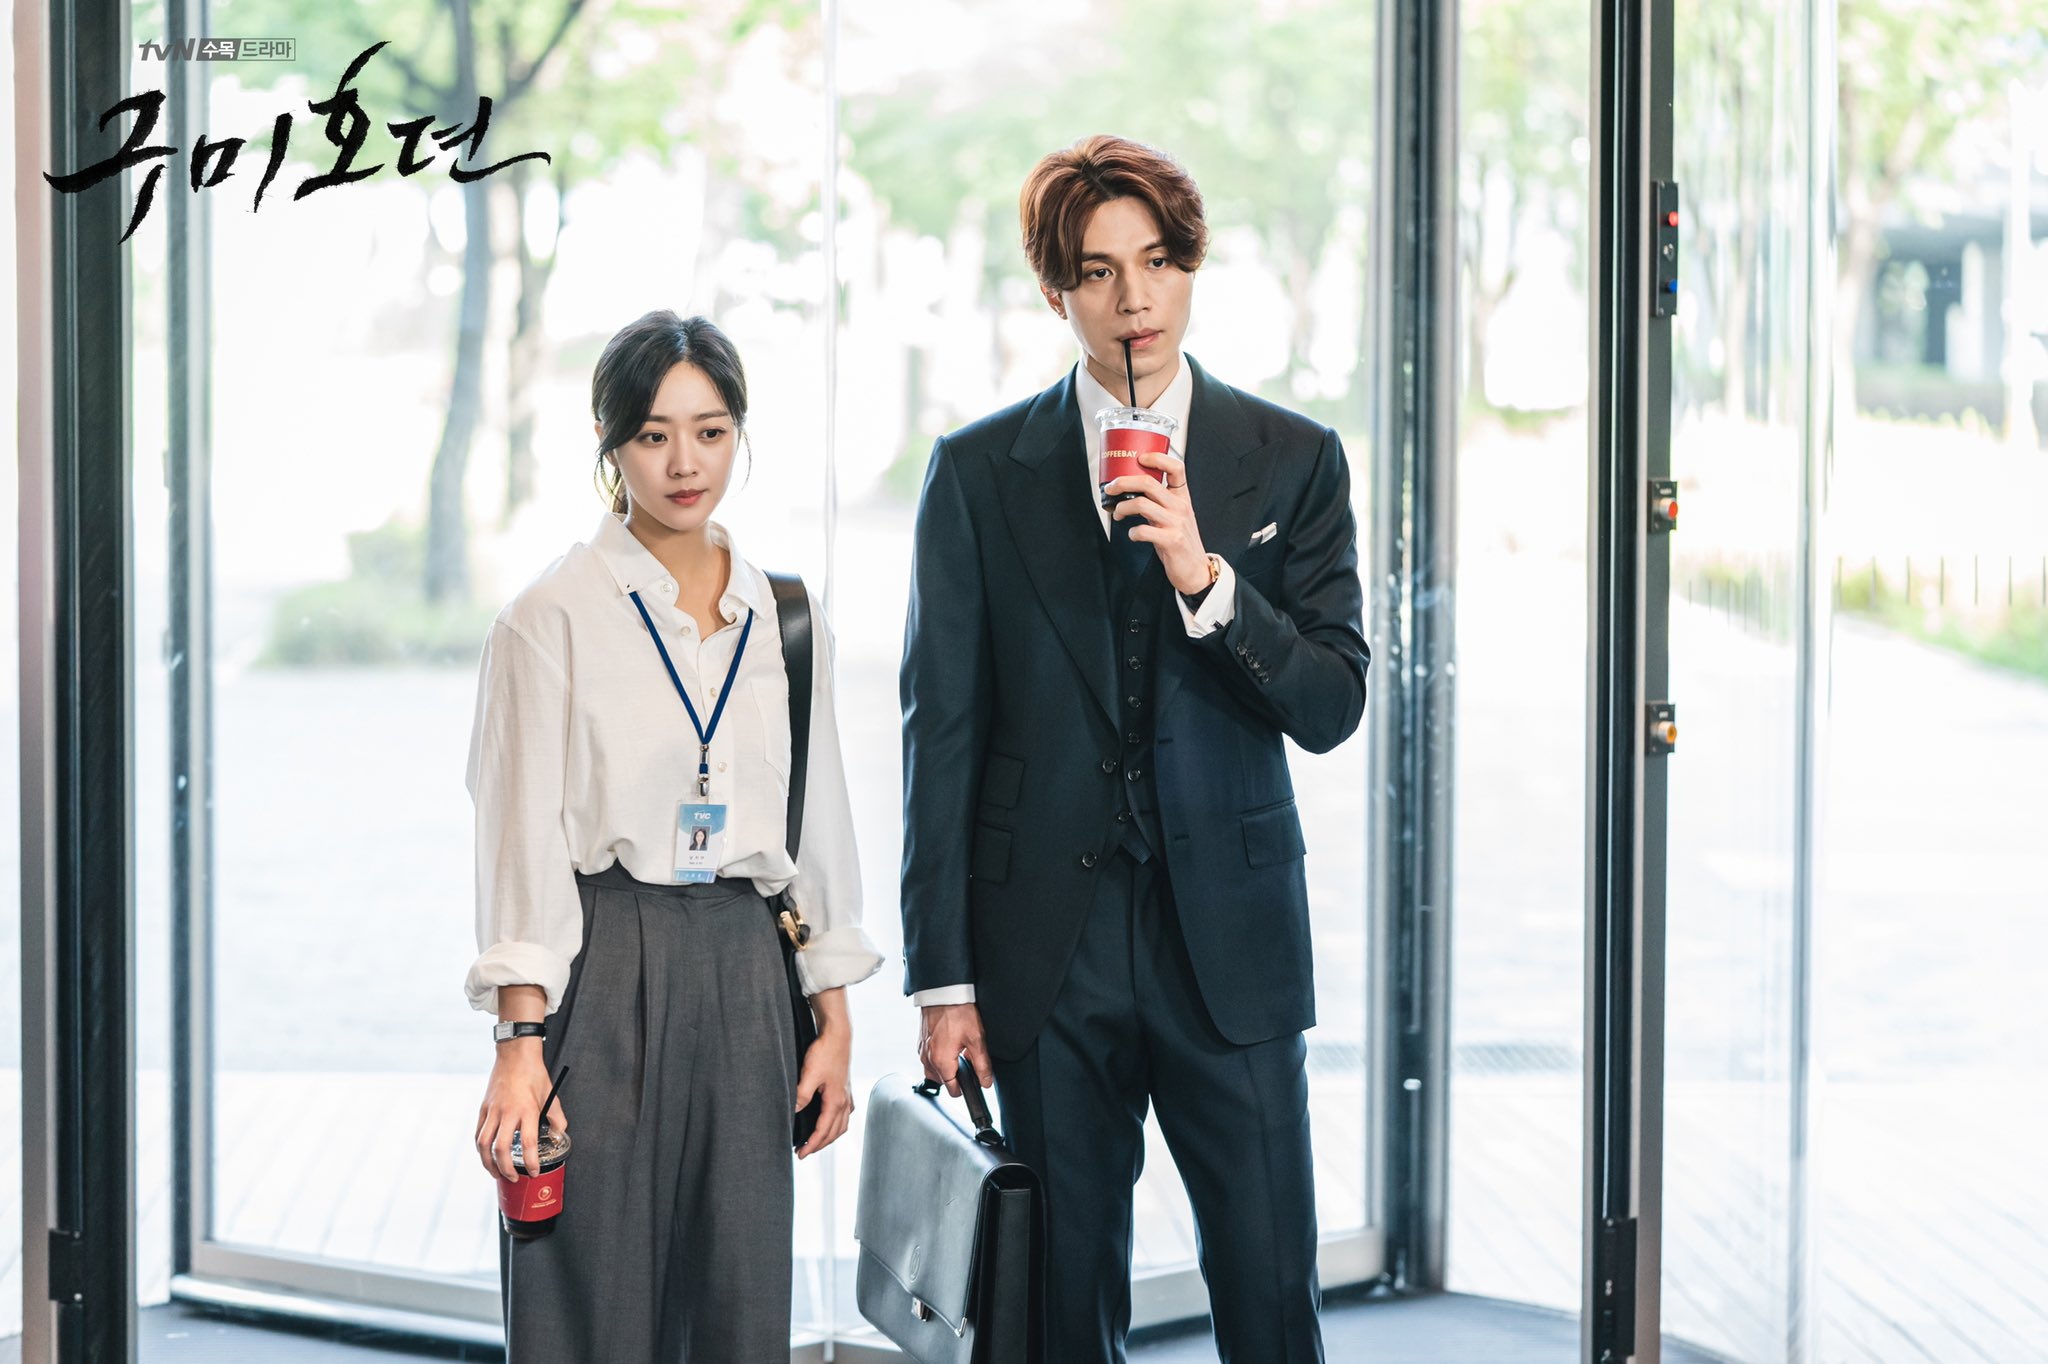 """Lee Dong Wook protects Jo Bo Ah on the way to work in """"Tale Of The Nine-Tailed"""""""